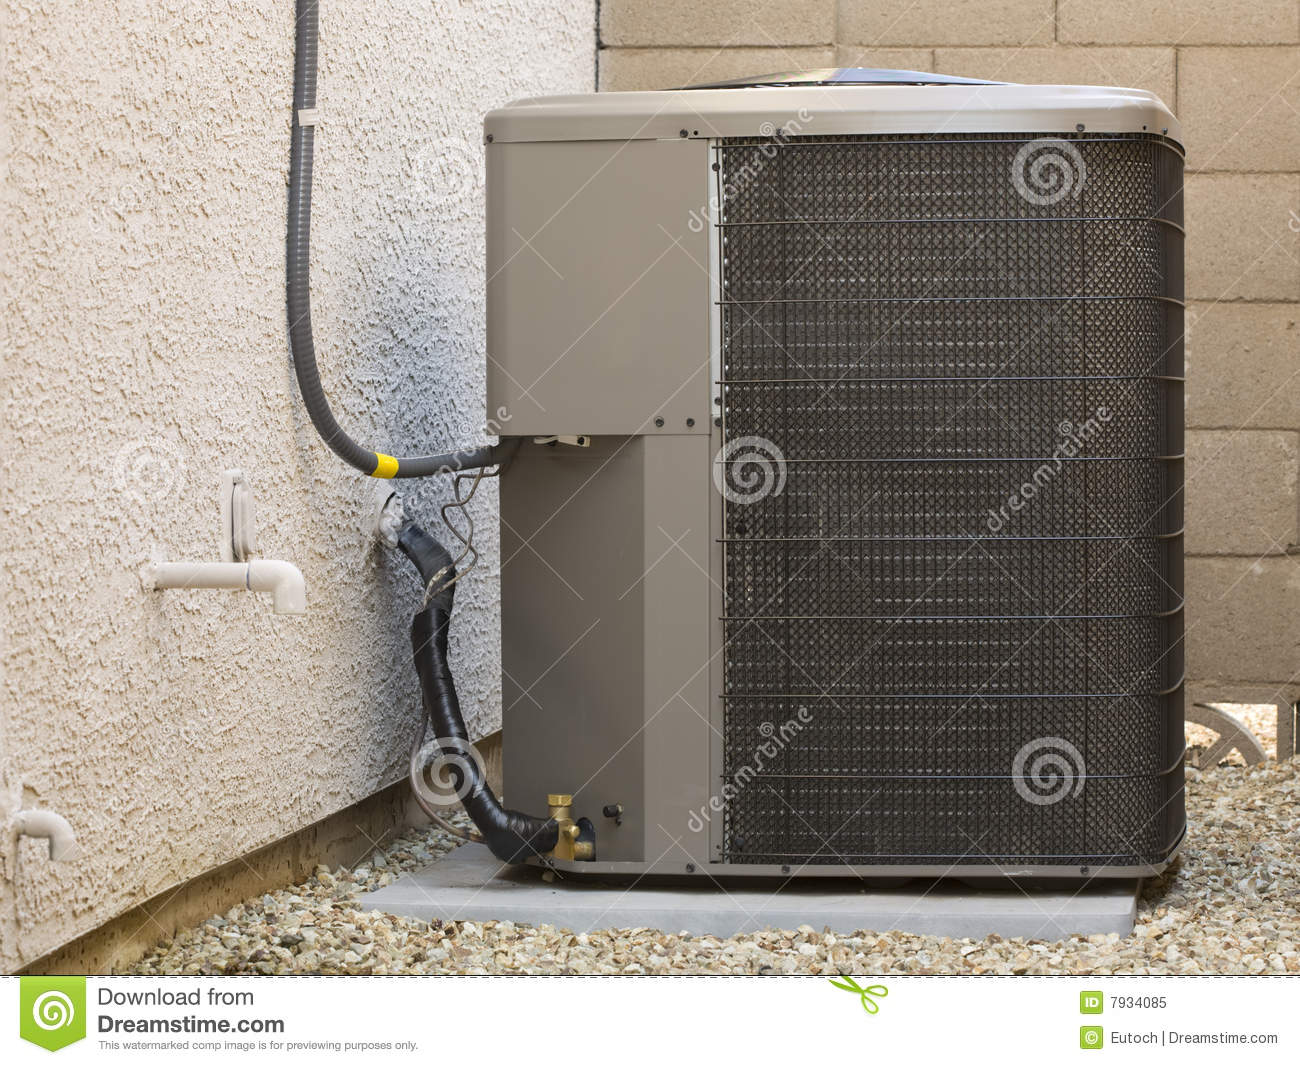 #82A328 Air Conditioner Compressor Royalty Free Stock Photo  Brand New 11621 Compressor For Air Conditioner images with 1300x1065 px on helpvideos.info - Air Conditioners, Air Coolers and more